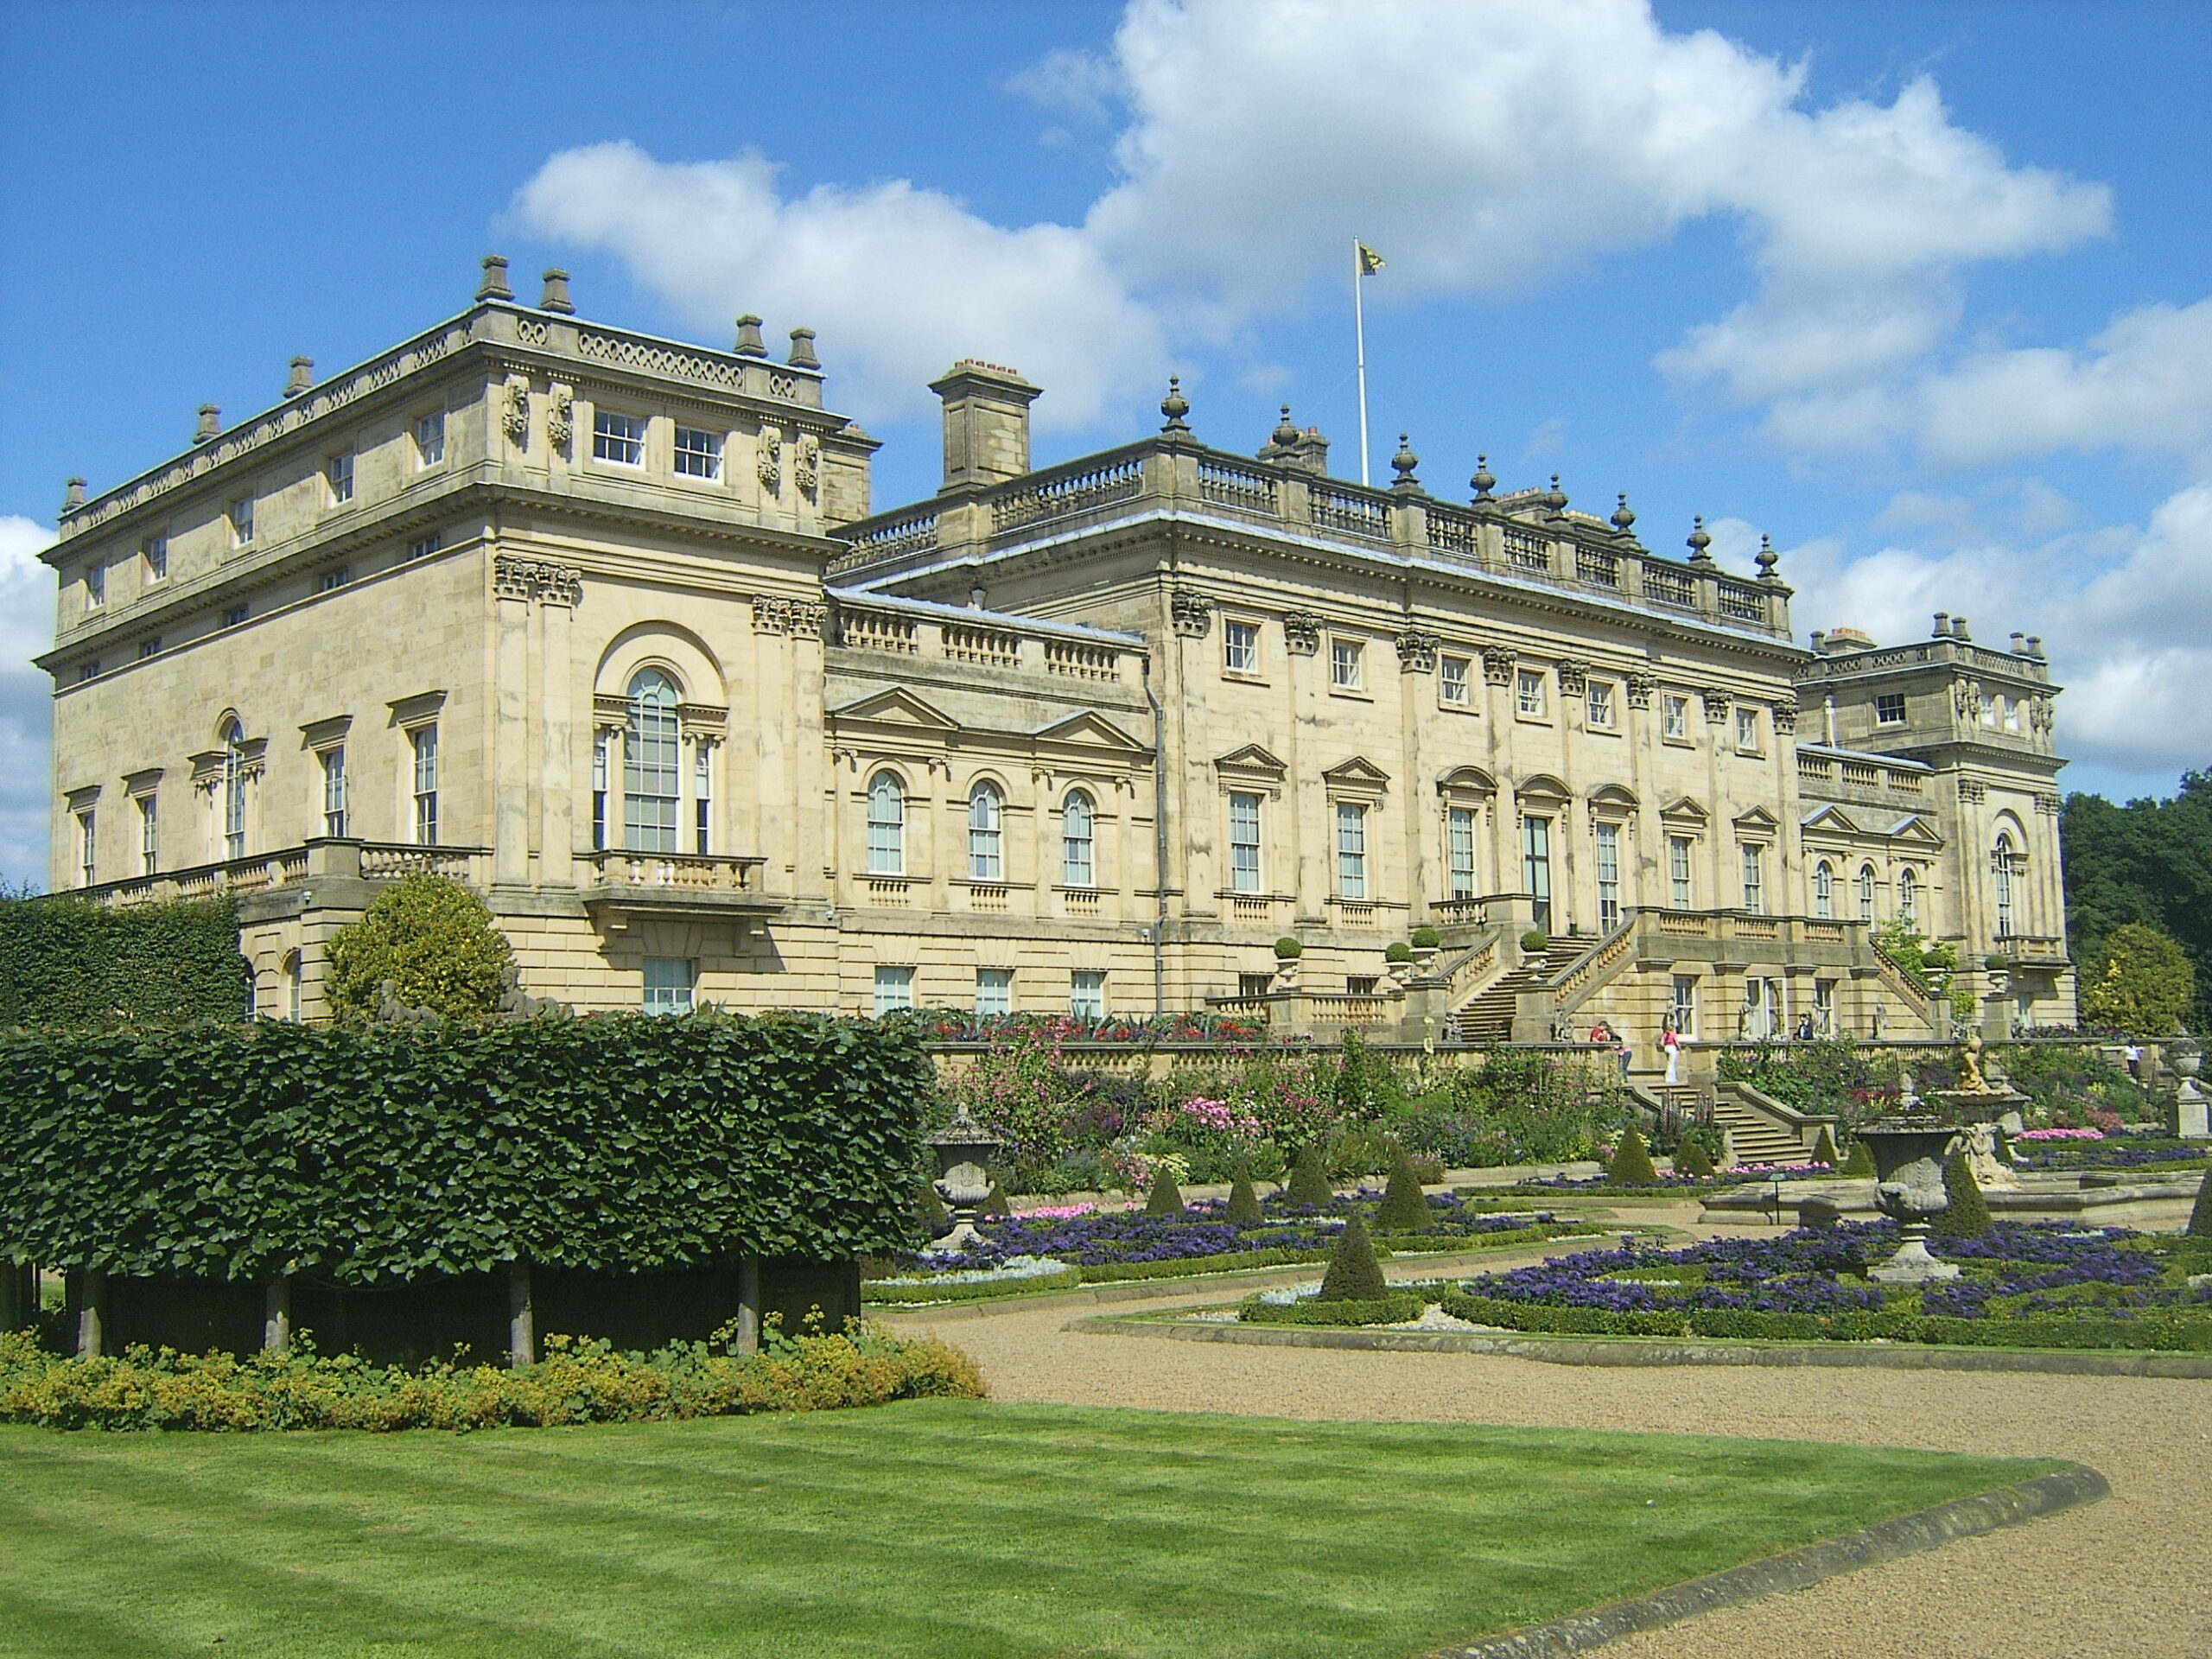 This image shows Harewood Castle, Leeds from the perspective of the garden.